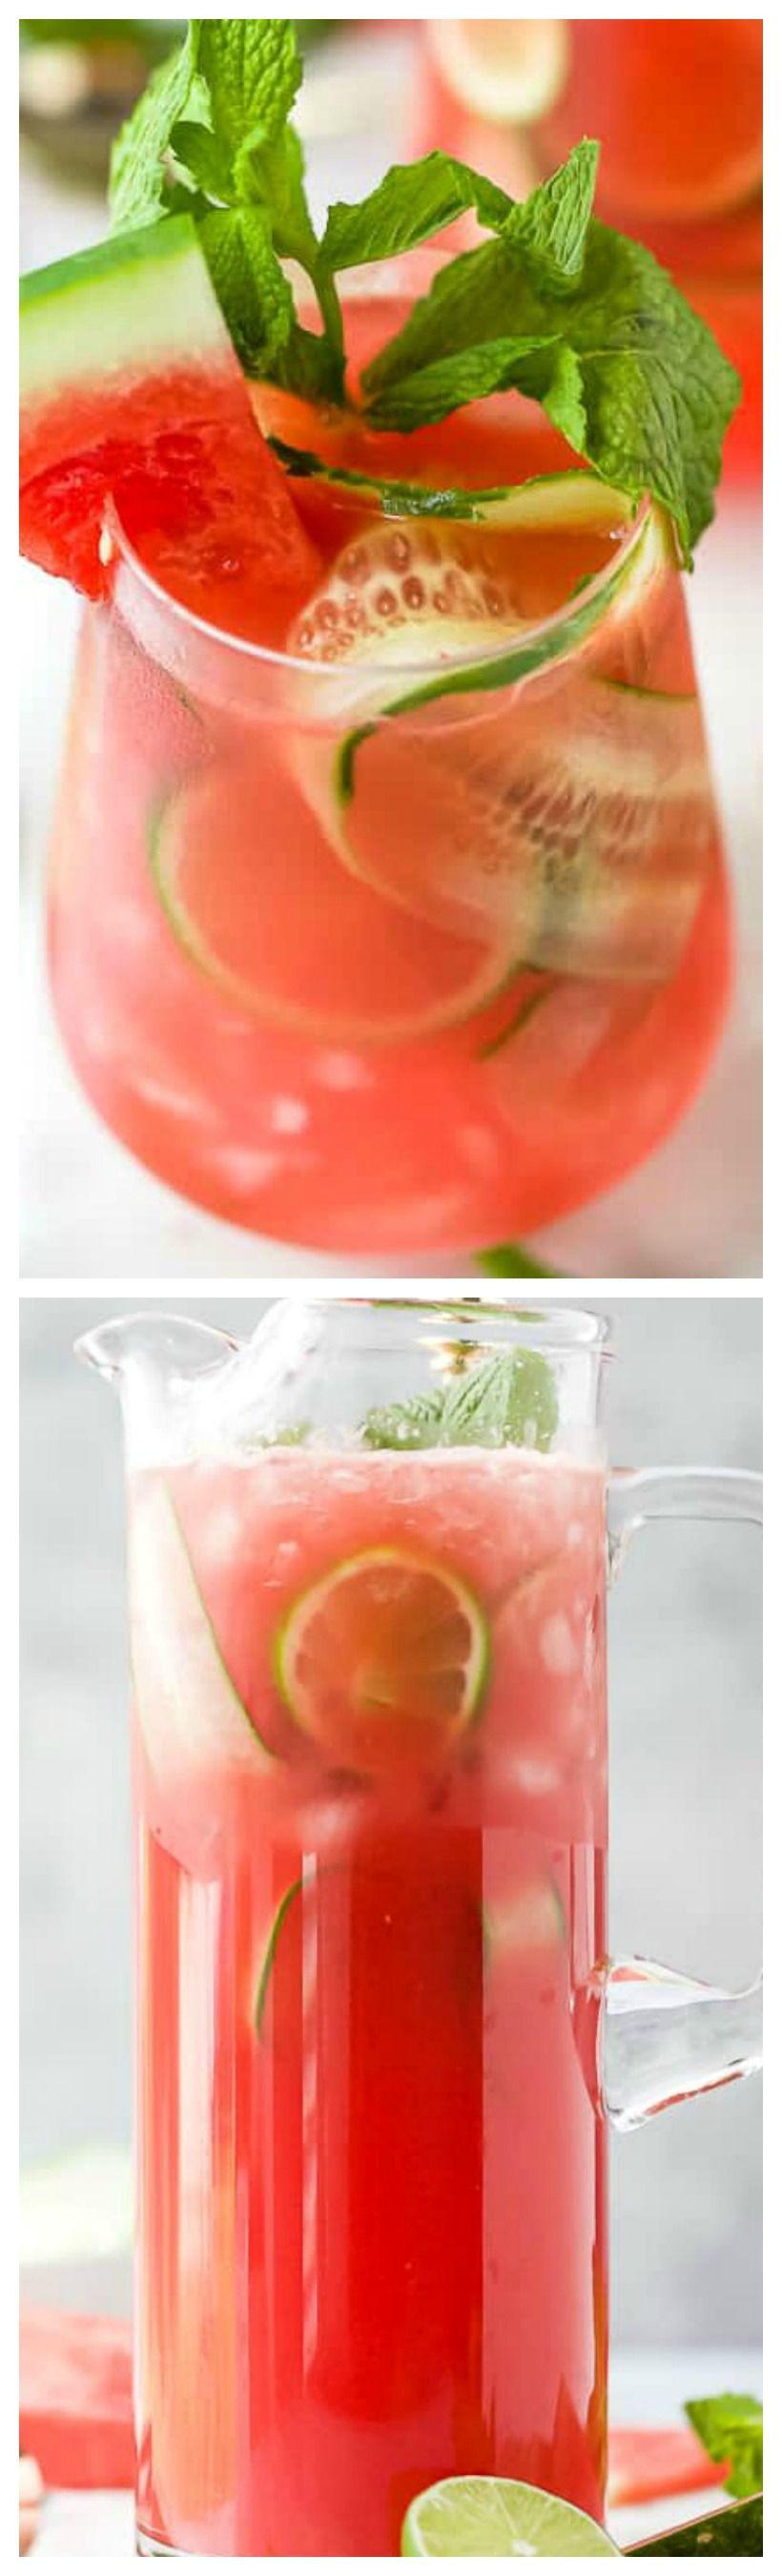 Refreshing Watermelon Cucumber Gin And Tonic Gin Cocktail Recipe Gin And Tonic Watermelon And Feta Gin Recipes